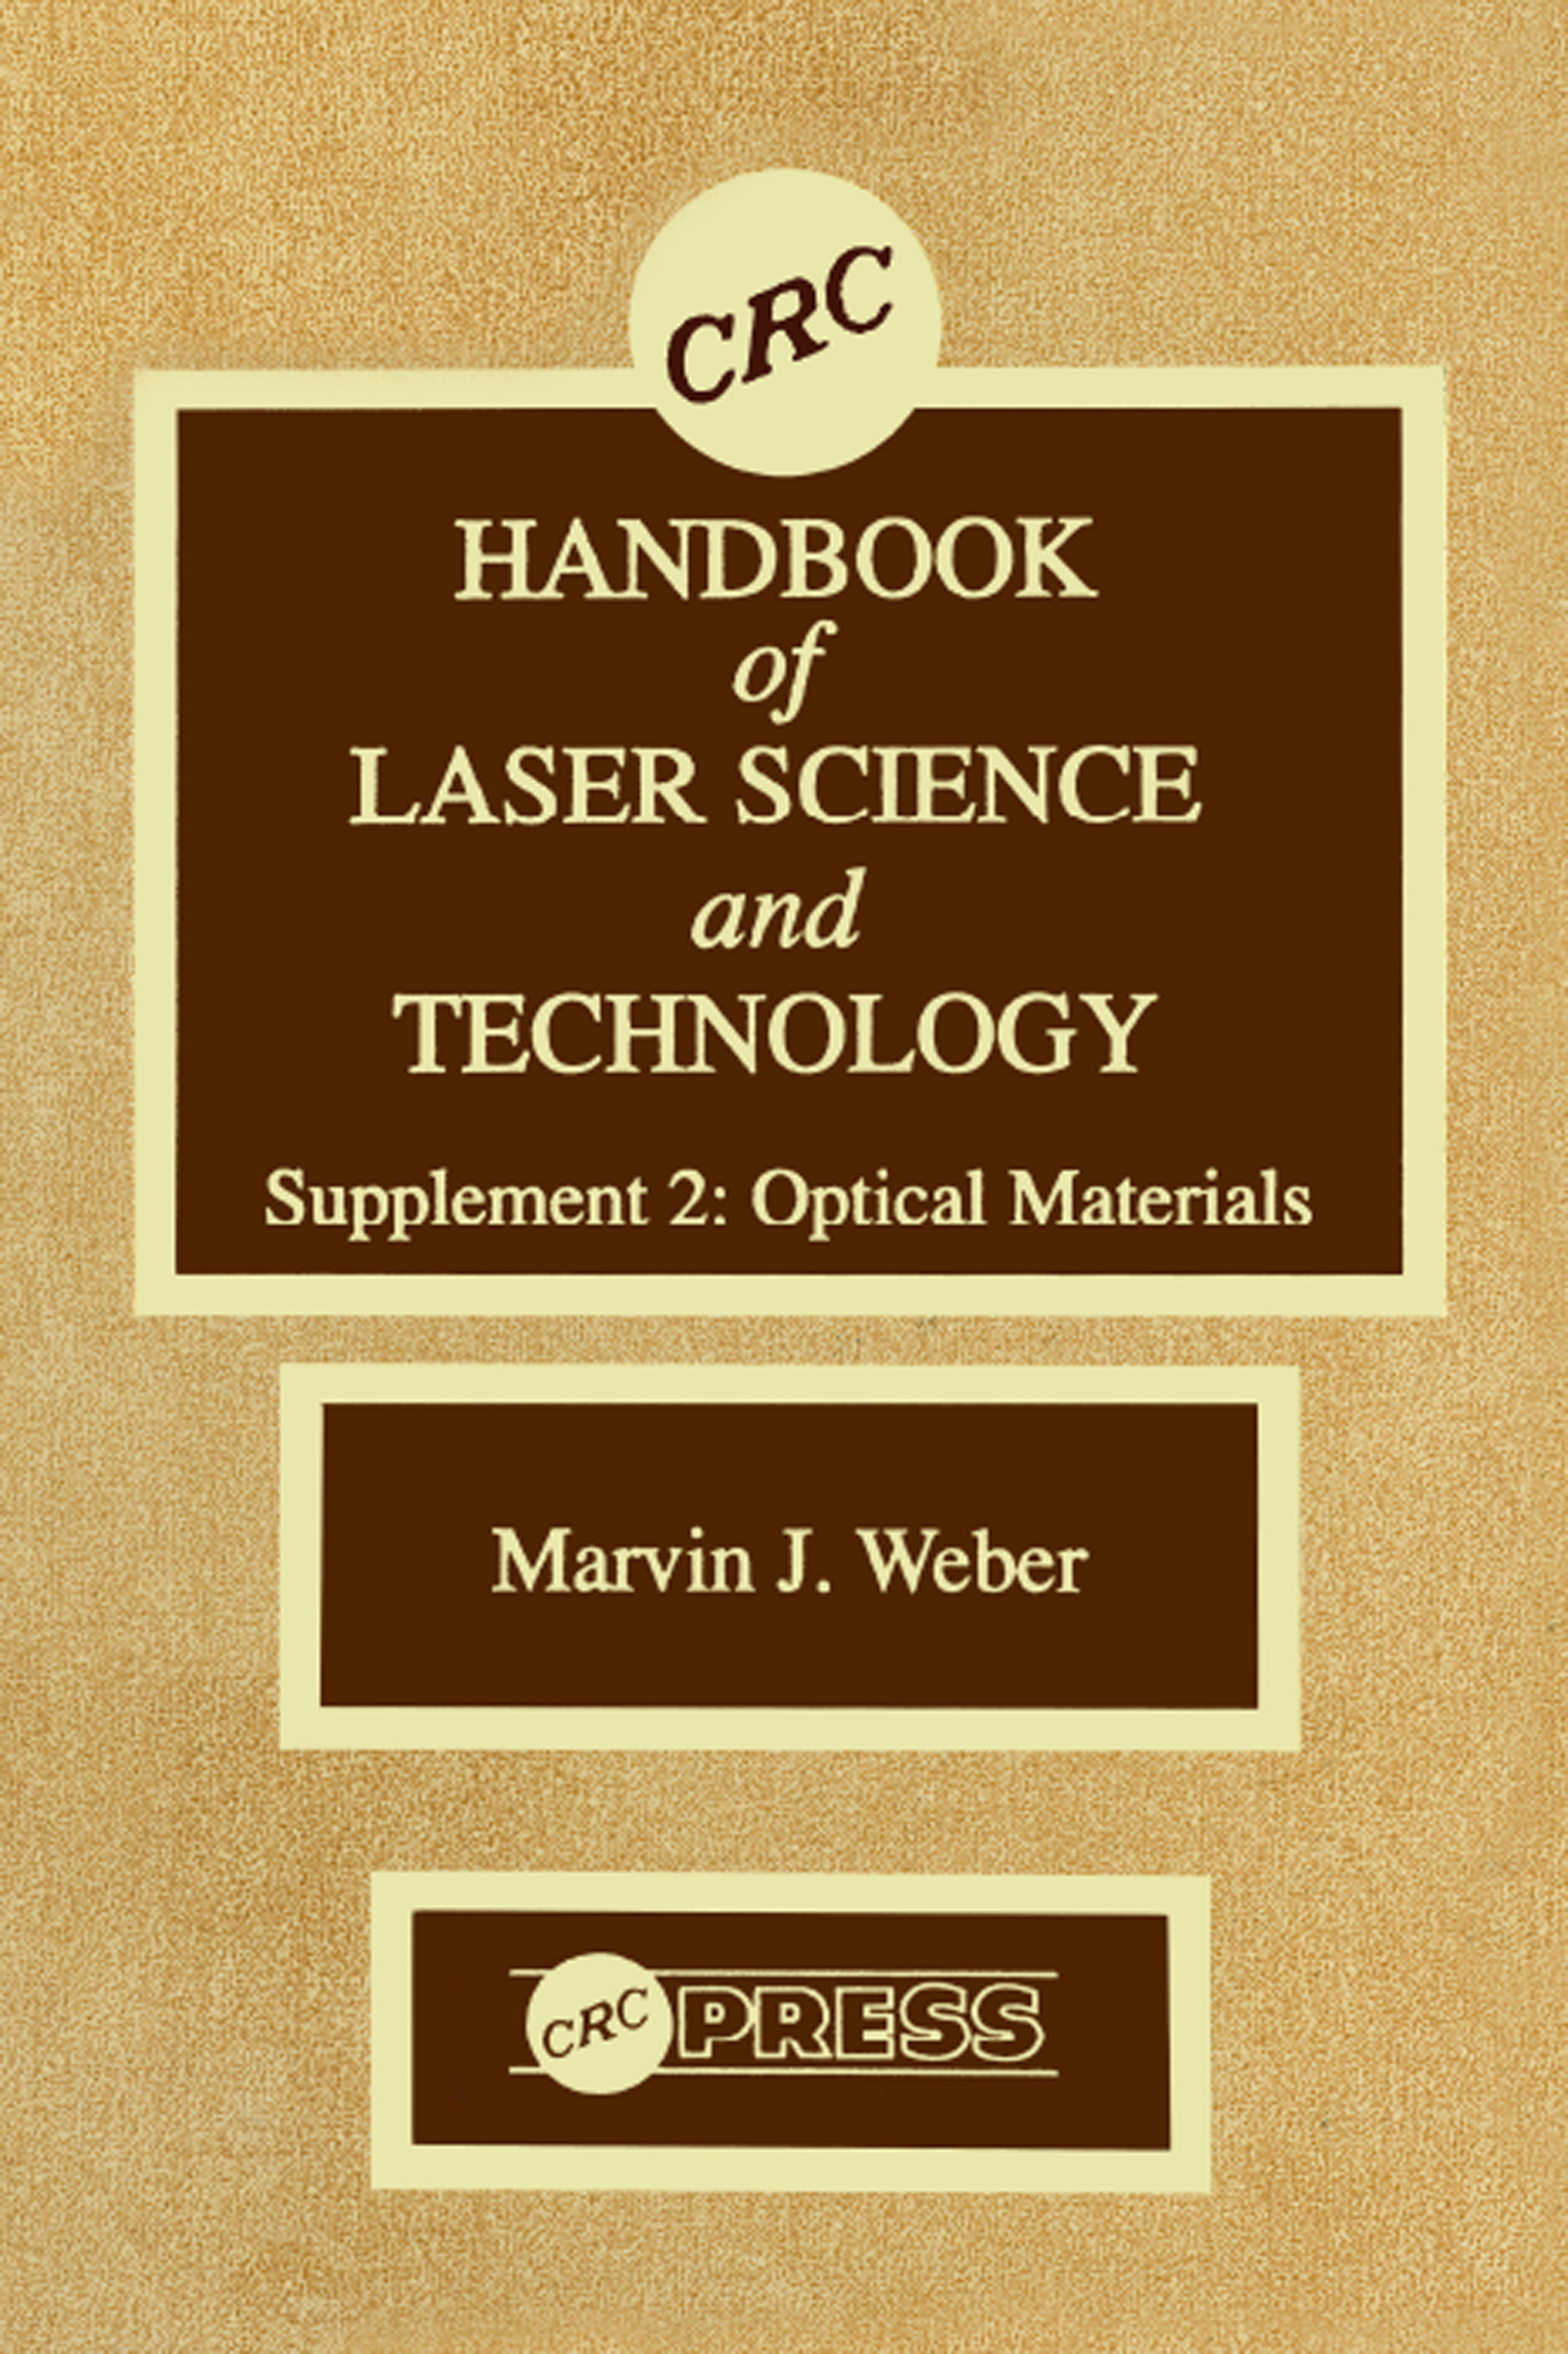 CRC HANDBOOK of LASER SCIENCE and TECHNOLOGY